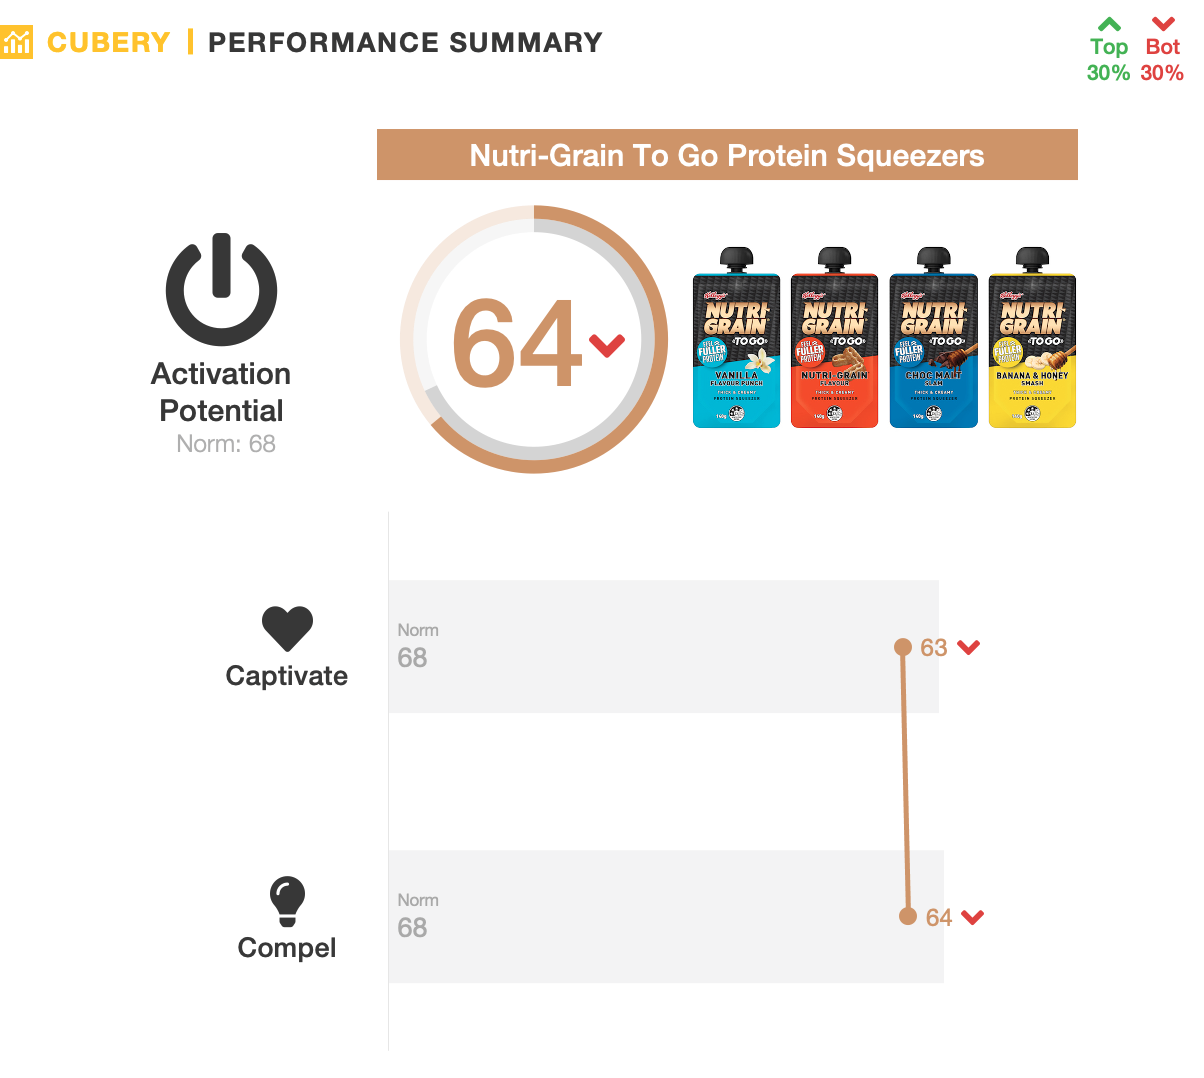 Nutri-Grain Protein Squeezer - Product Innovation - Performance Summary